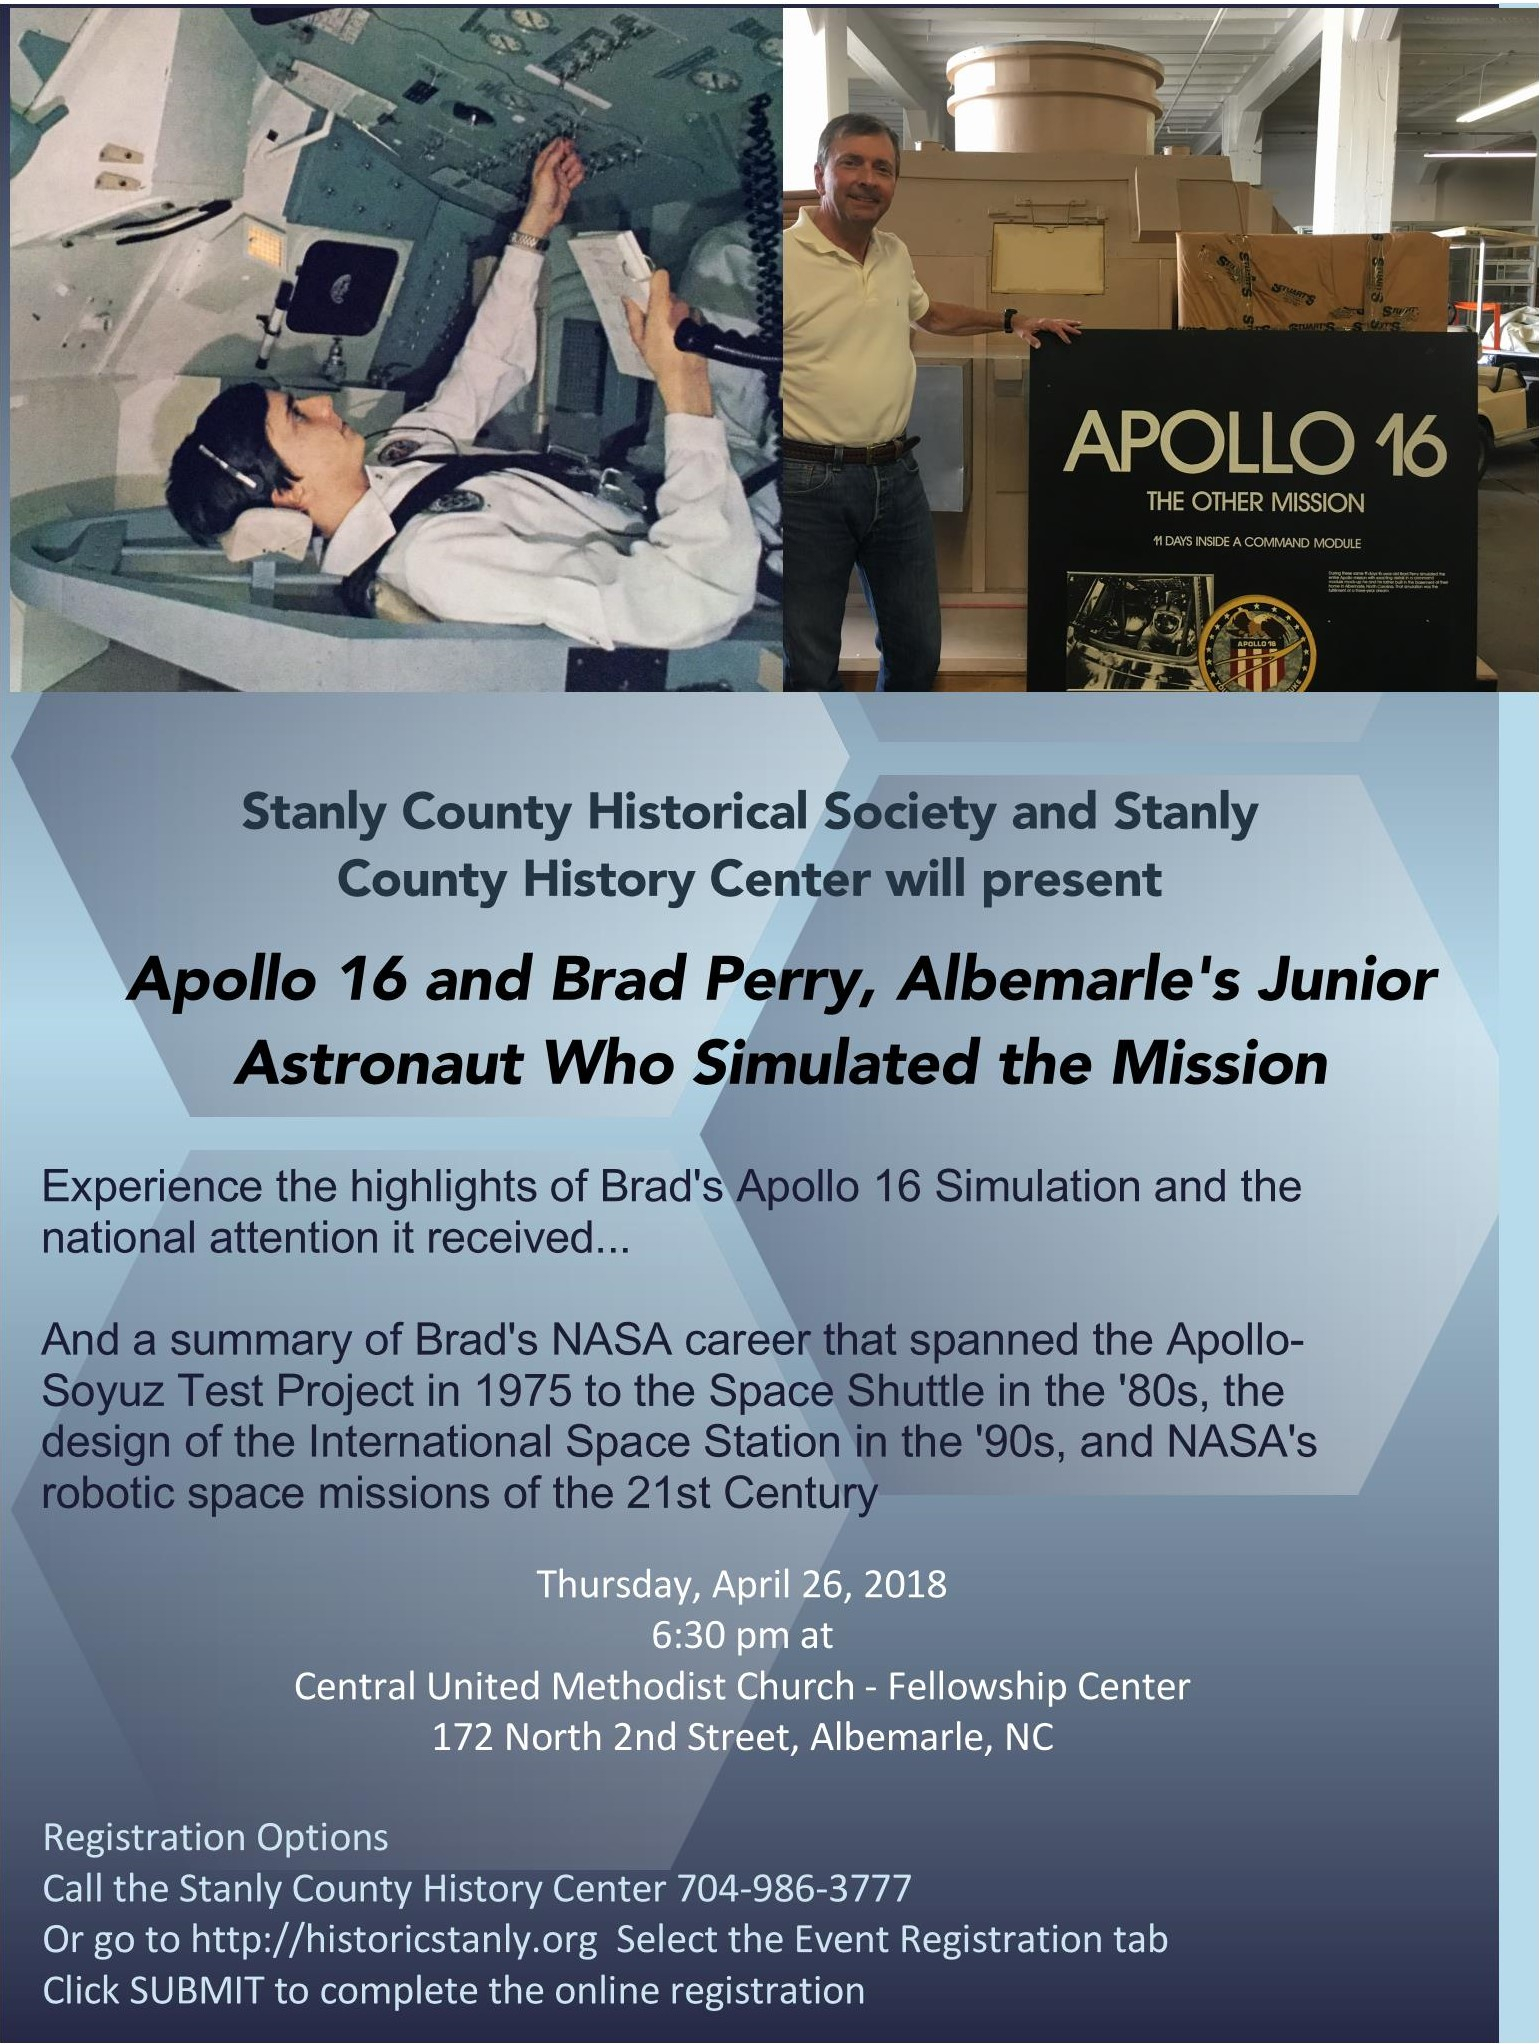 Apollo 16 and Brad Perry, Albemarle Junior Astronaut Who Simulated the Mission – A Historical Society Program